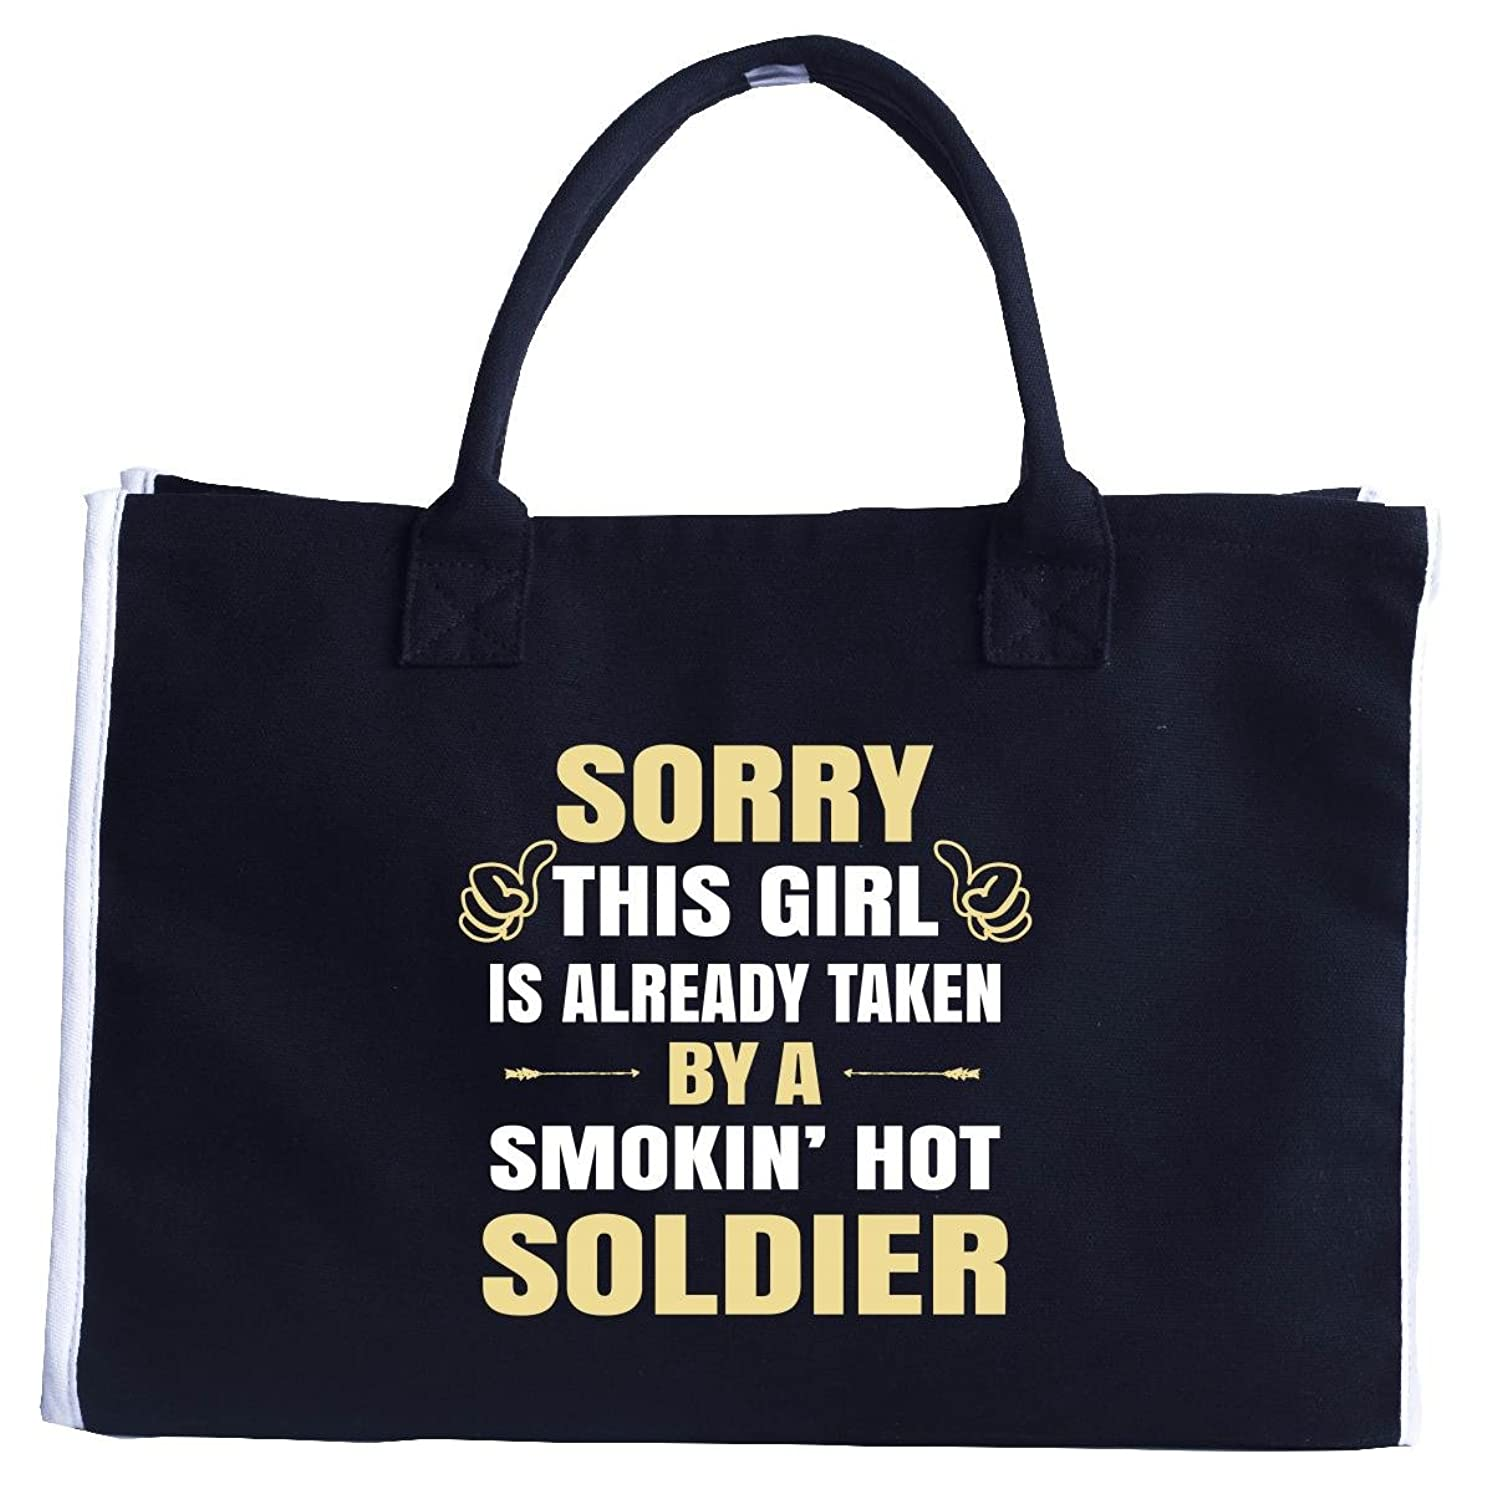 This Girl Is Taken By A Smokin' Hot Soldier - Fashion Customized Tote Bag